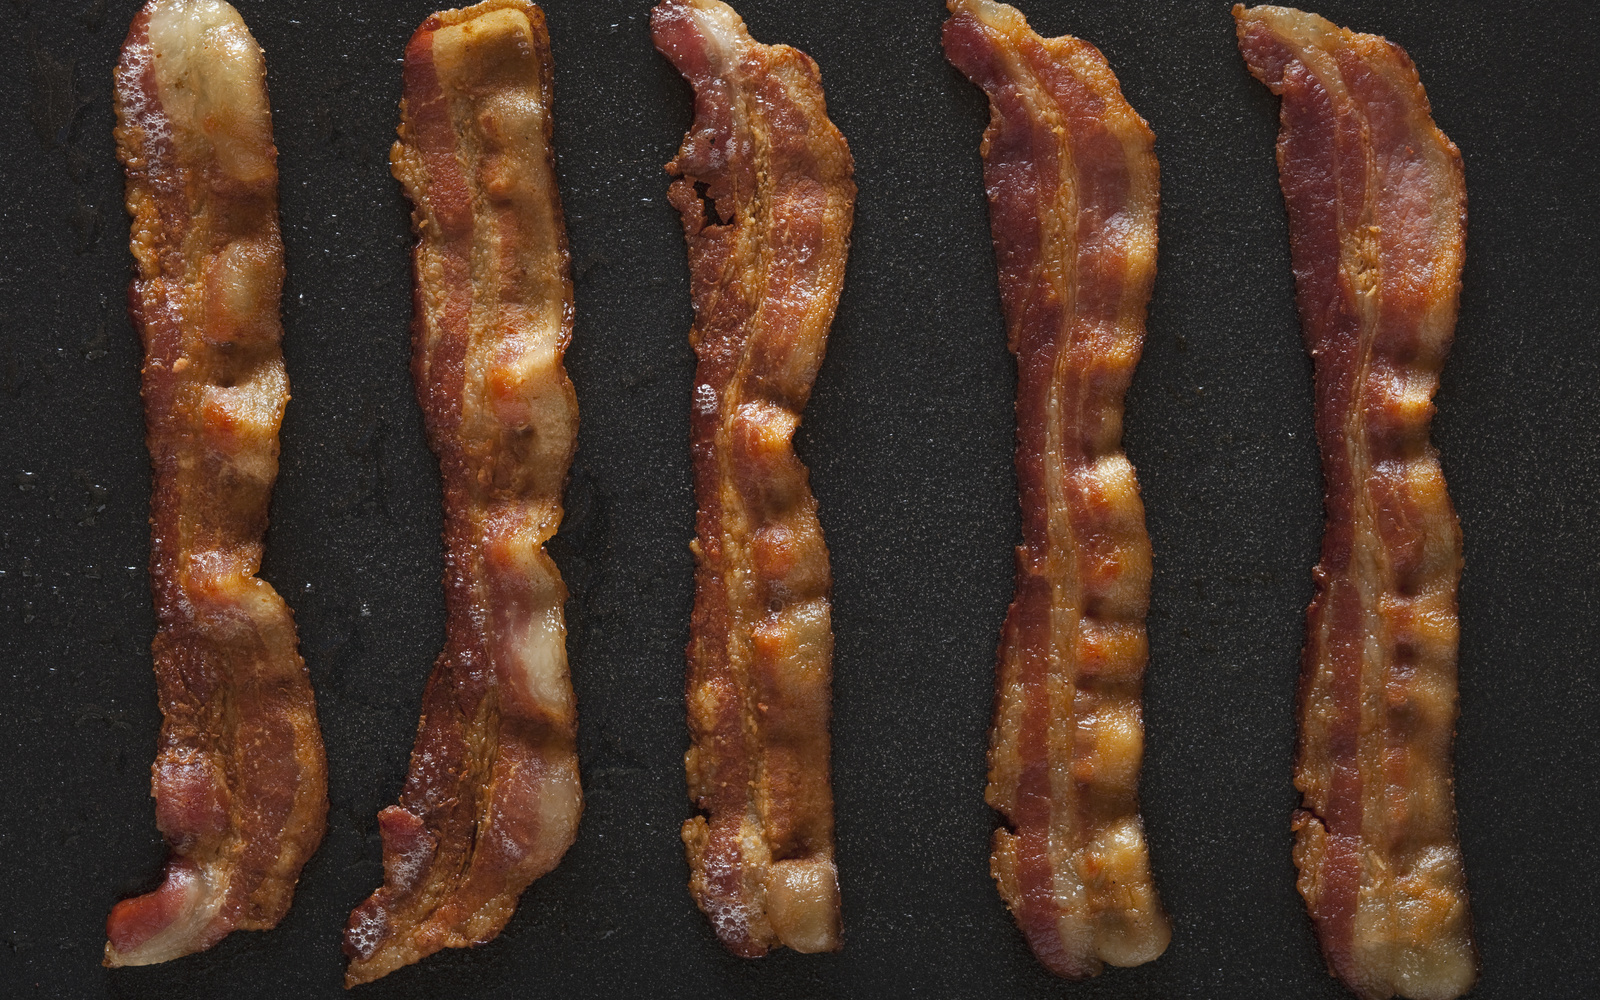 This West Coast Restaurant Will Pay You $1,000 to Eat Their Bacon for a Day